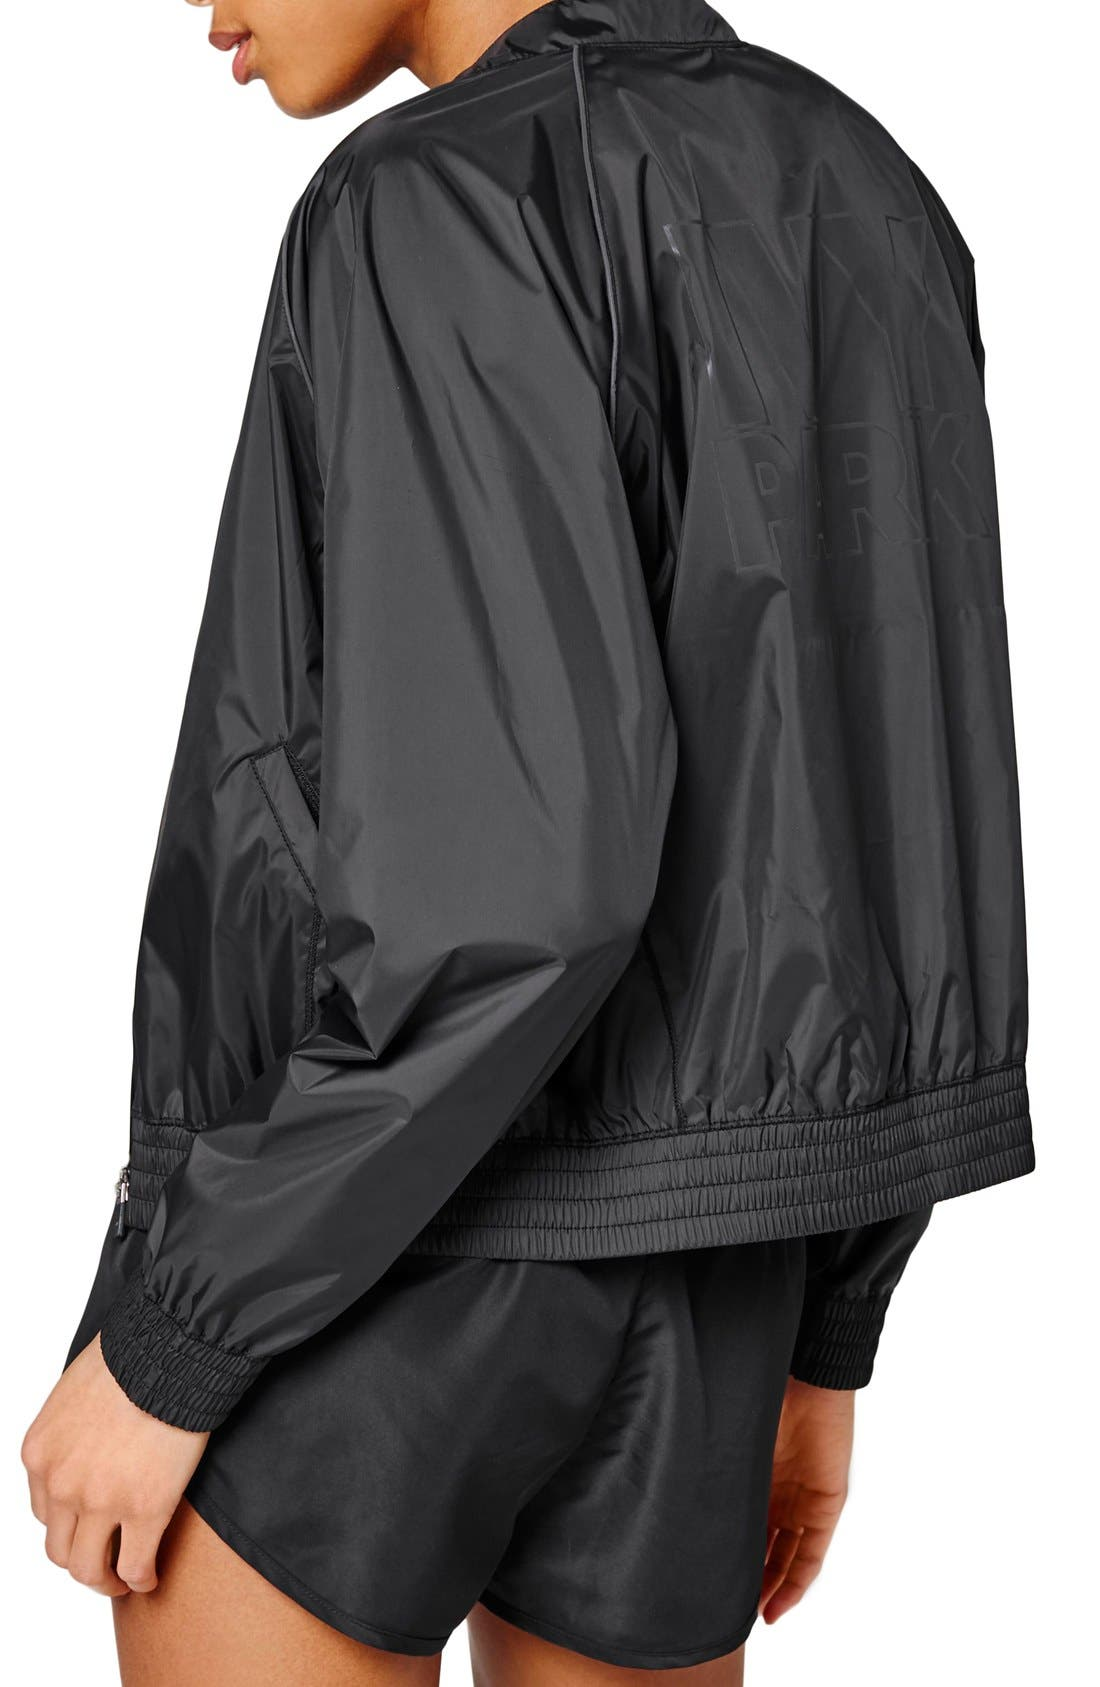 IVY PARK<SUP>®</SUP>, Technical Bomber Jacket with Reflective Logo, Alternate thumbnail 2, color, 001